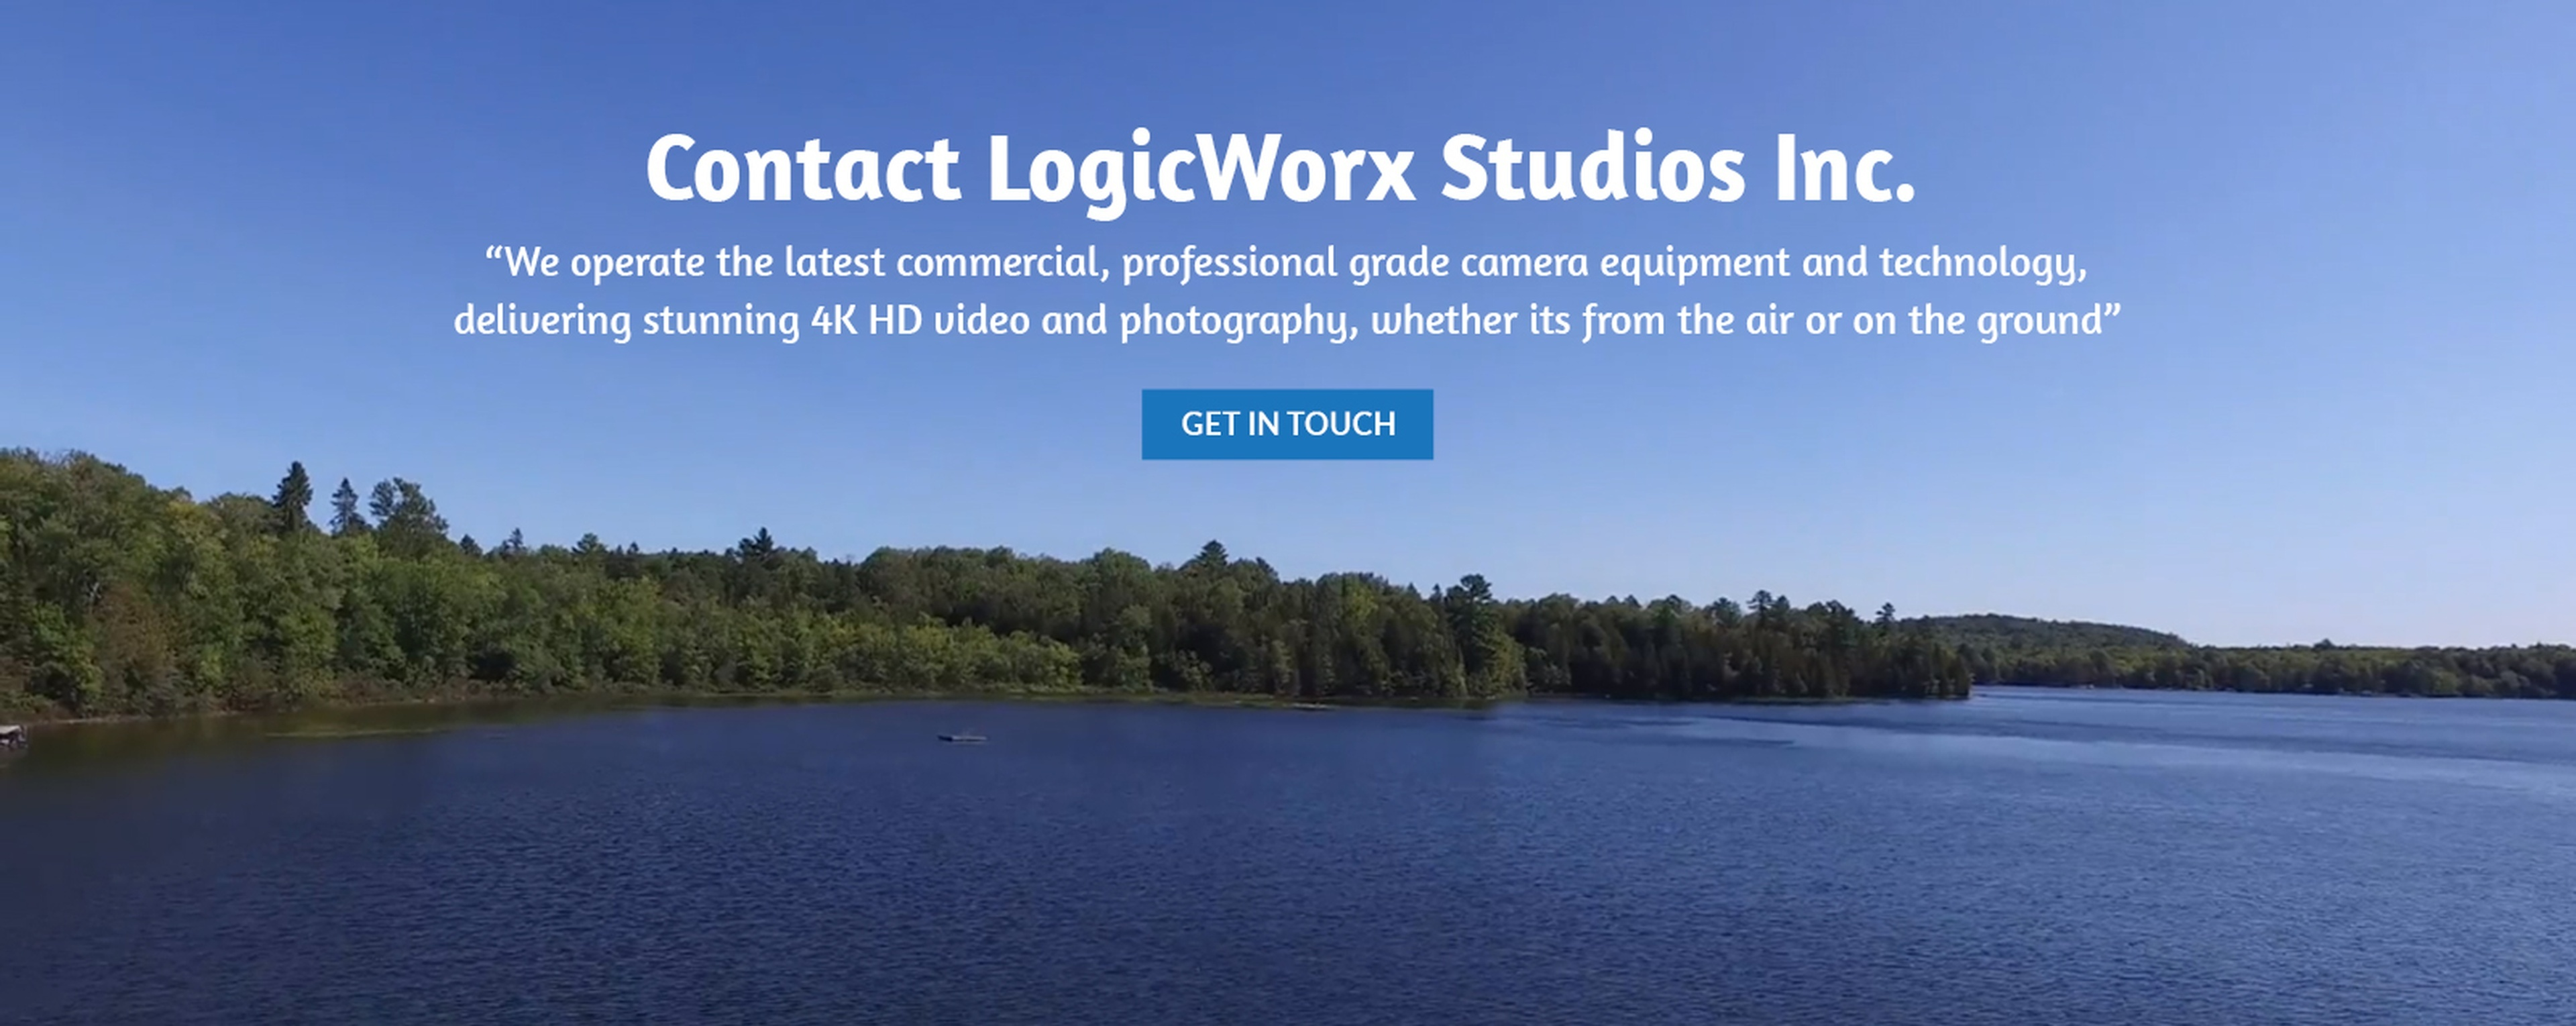 Contact LogicWorx Studios Inc. - Professional Drone Video Production Services Newmarket